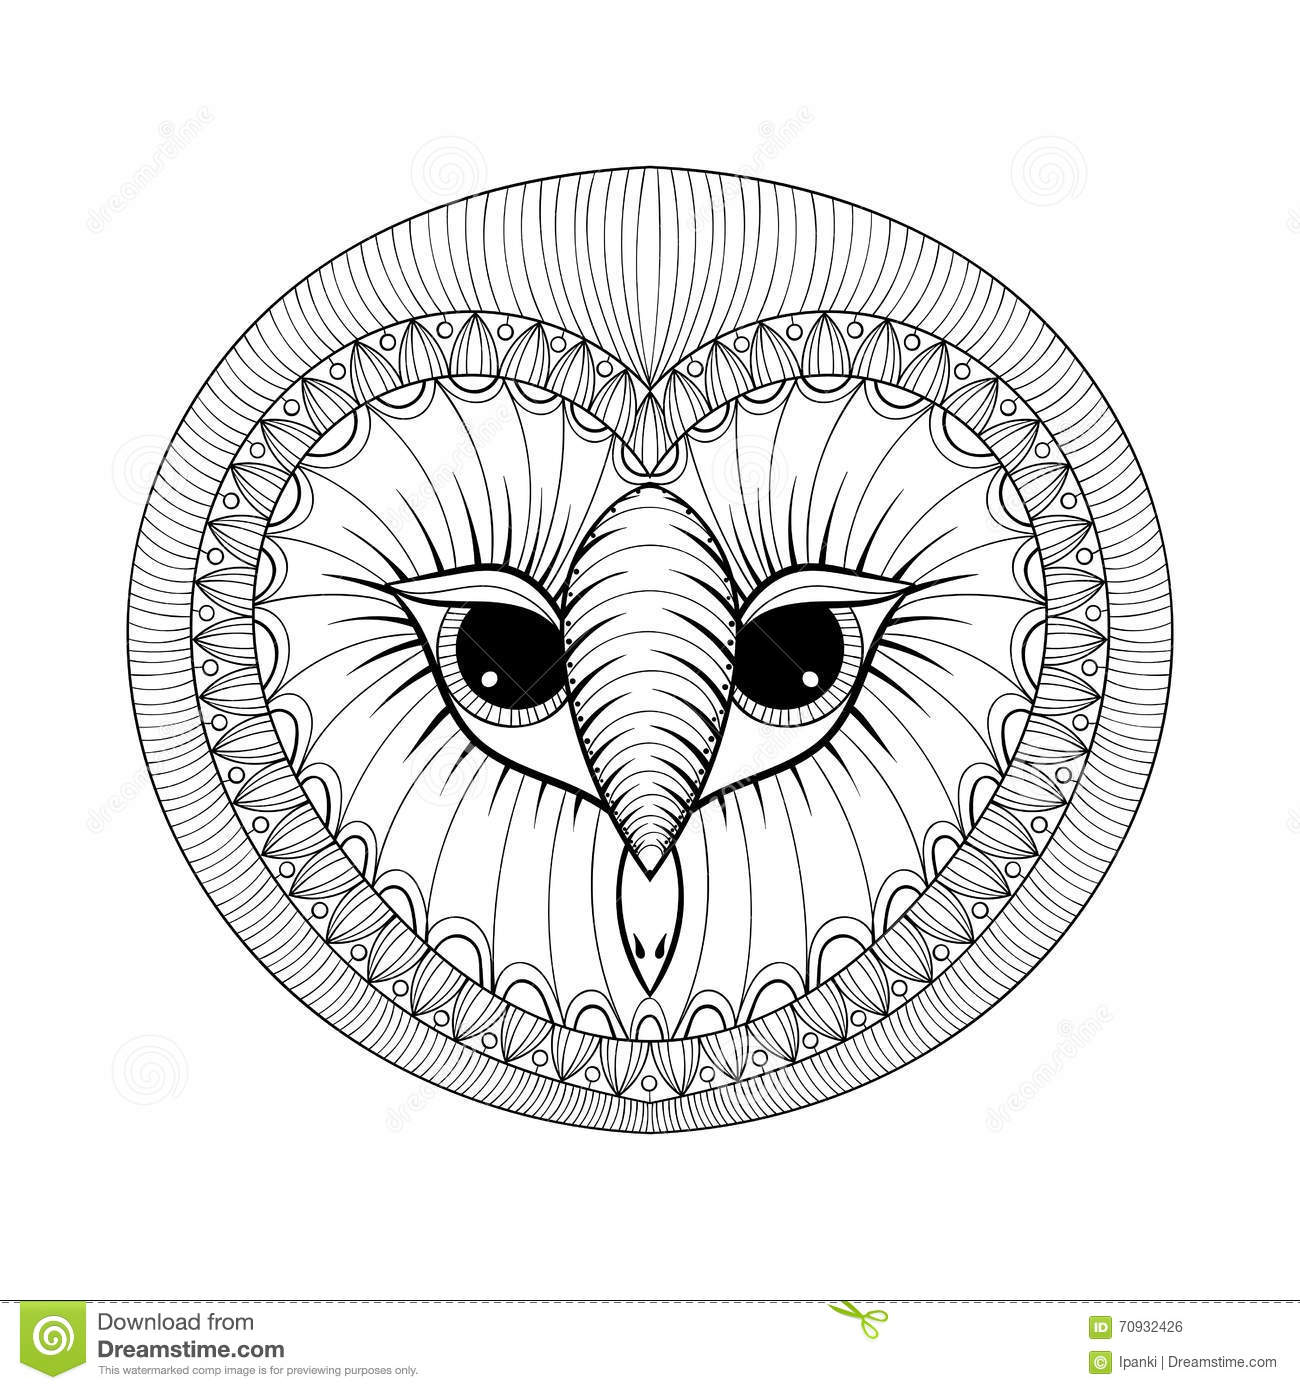 Fr free coloring pages for owls - Coloring Page With Owl Head Zentangle Stylized Hand Drawing Ill Royalty Free Stock Image